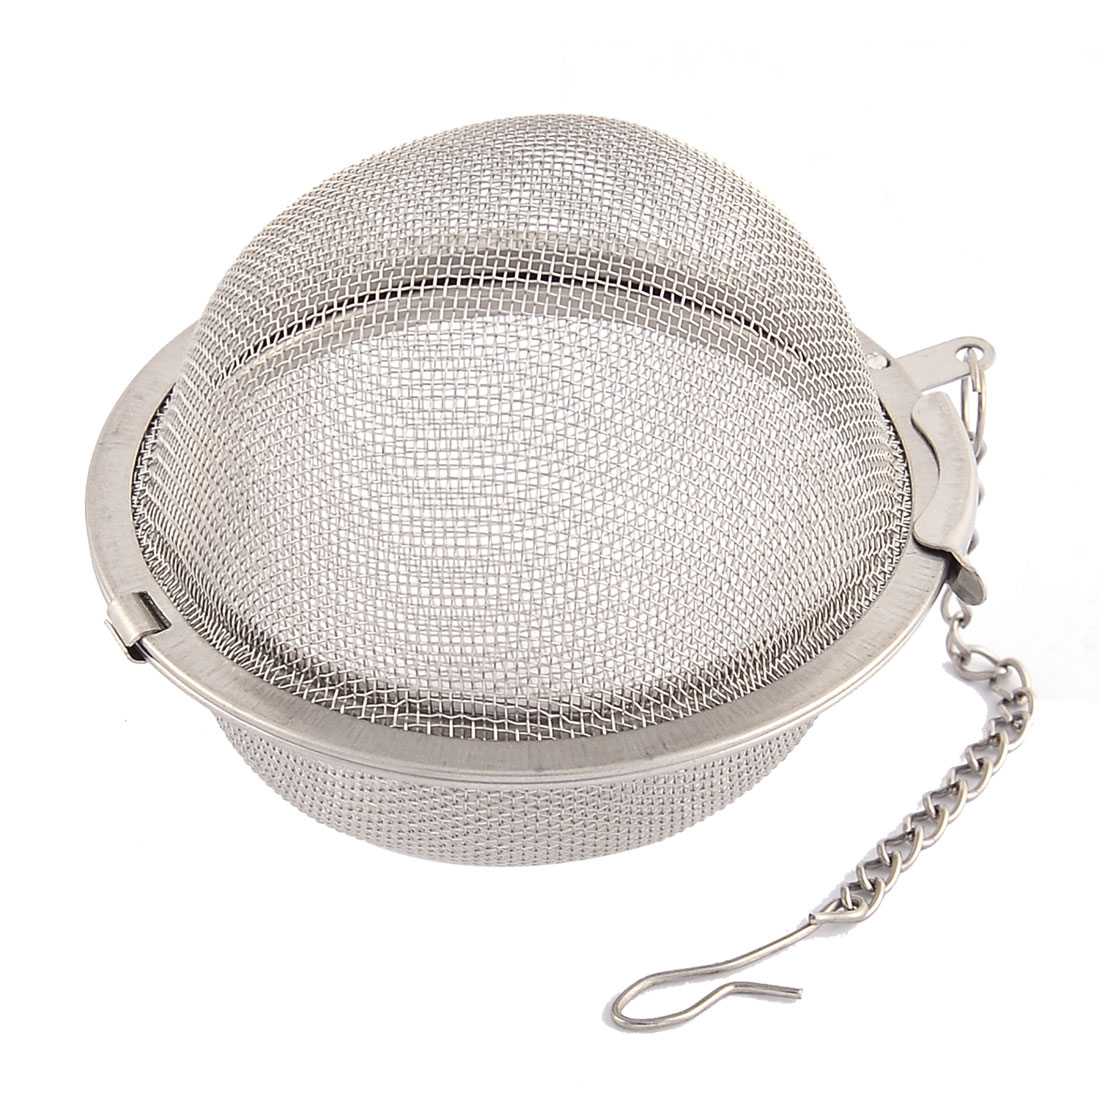 304 Stainless Steel Locking Chain Mesh Tea Ball Strainer Infuser 2.2'' Dia 2 PCS by